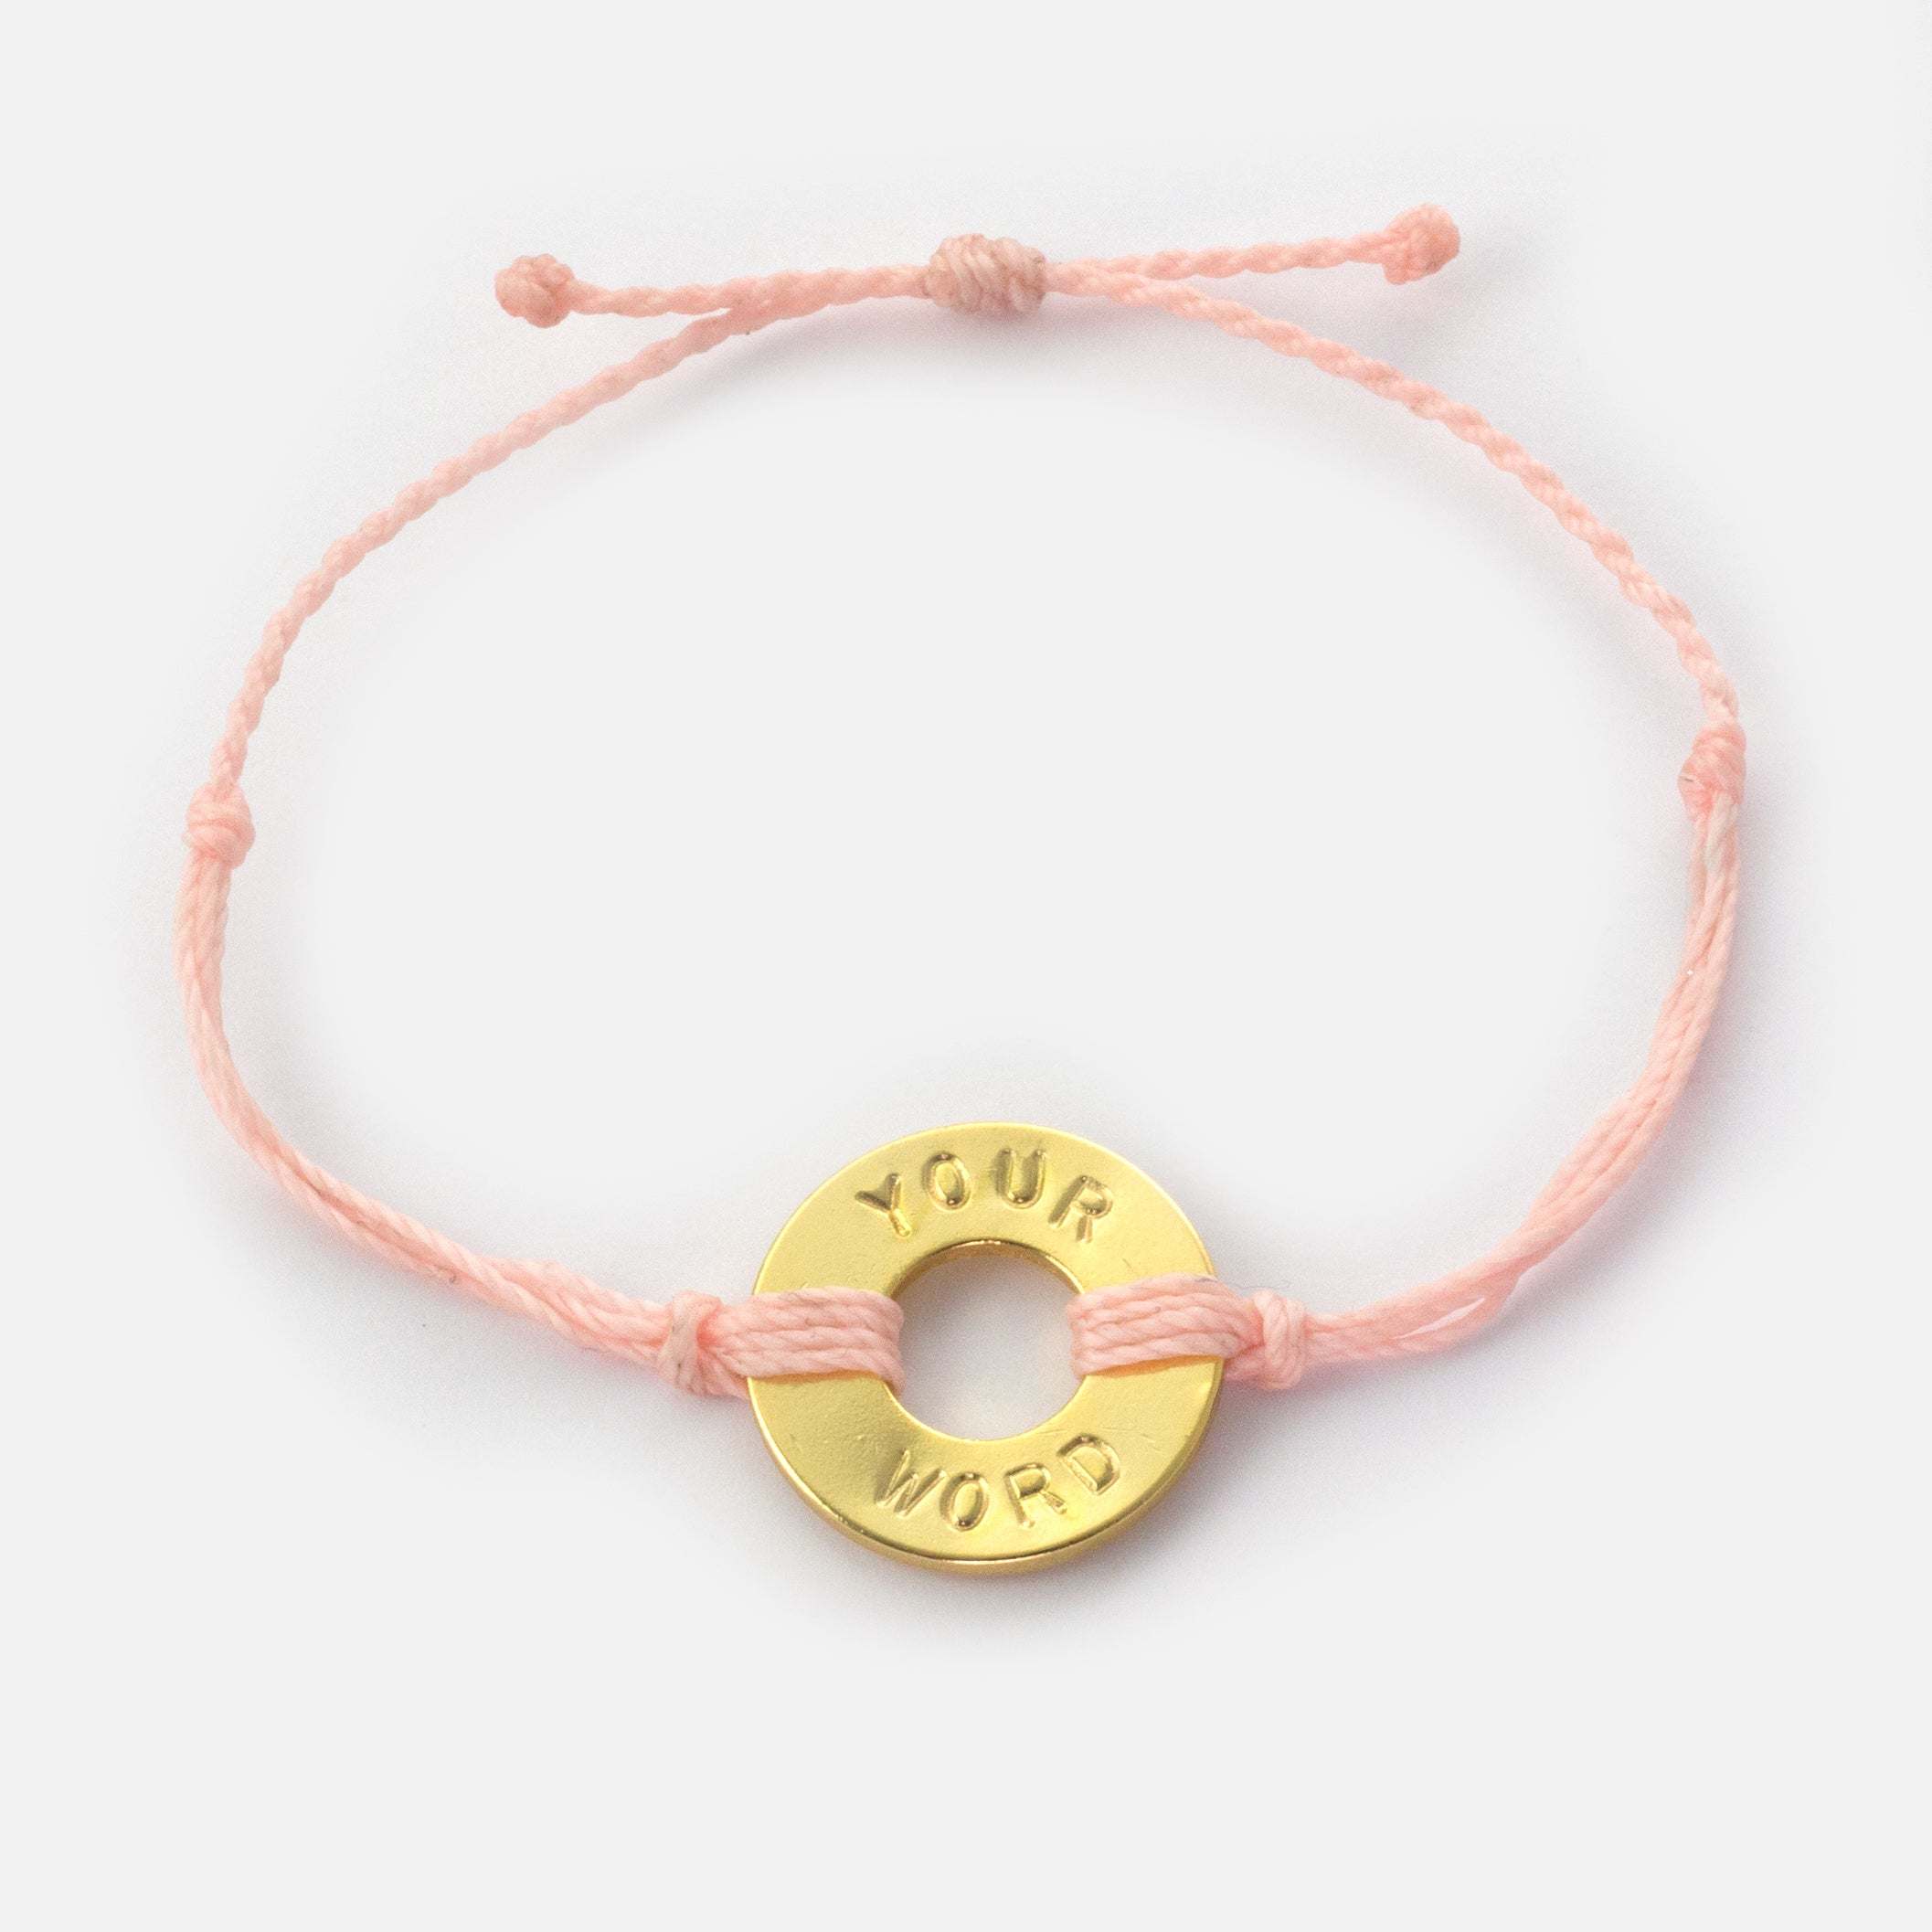 MyIntent Custom Twist Bracelet Light Pink String with Gold Token